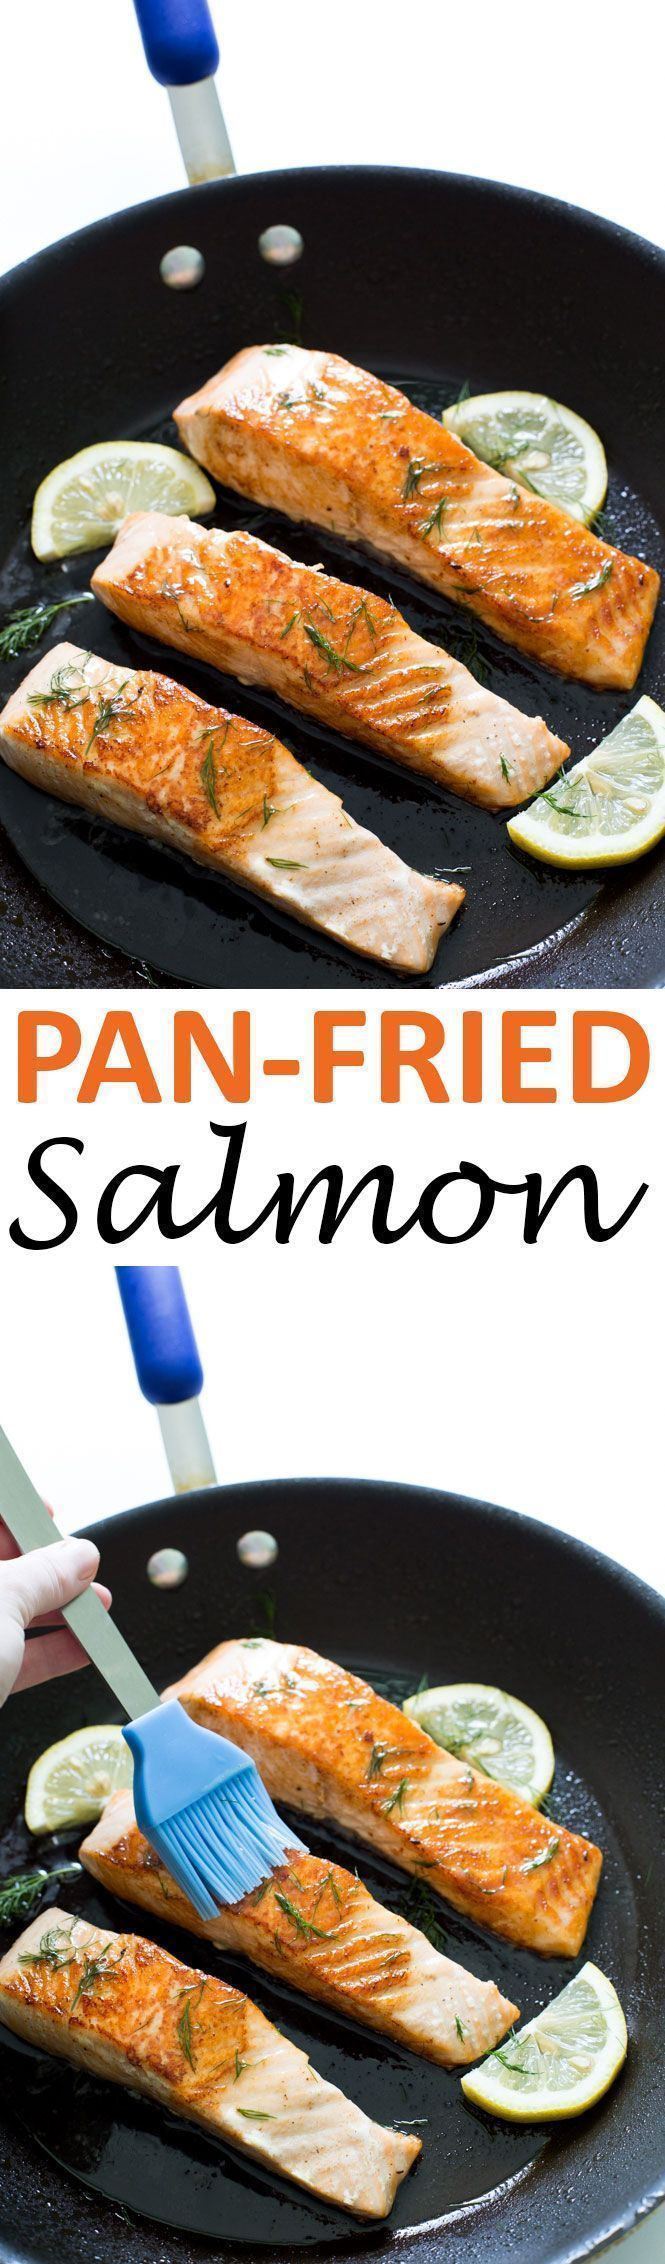 Super Easy Pan Fried Salmon with Lemon Dill Butter. Takes 20 minutes to make and only requires 5 ingredients! | chefsavvy.com #recipe #salmon #pan #fried #seafood #lemon #dill